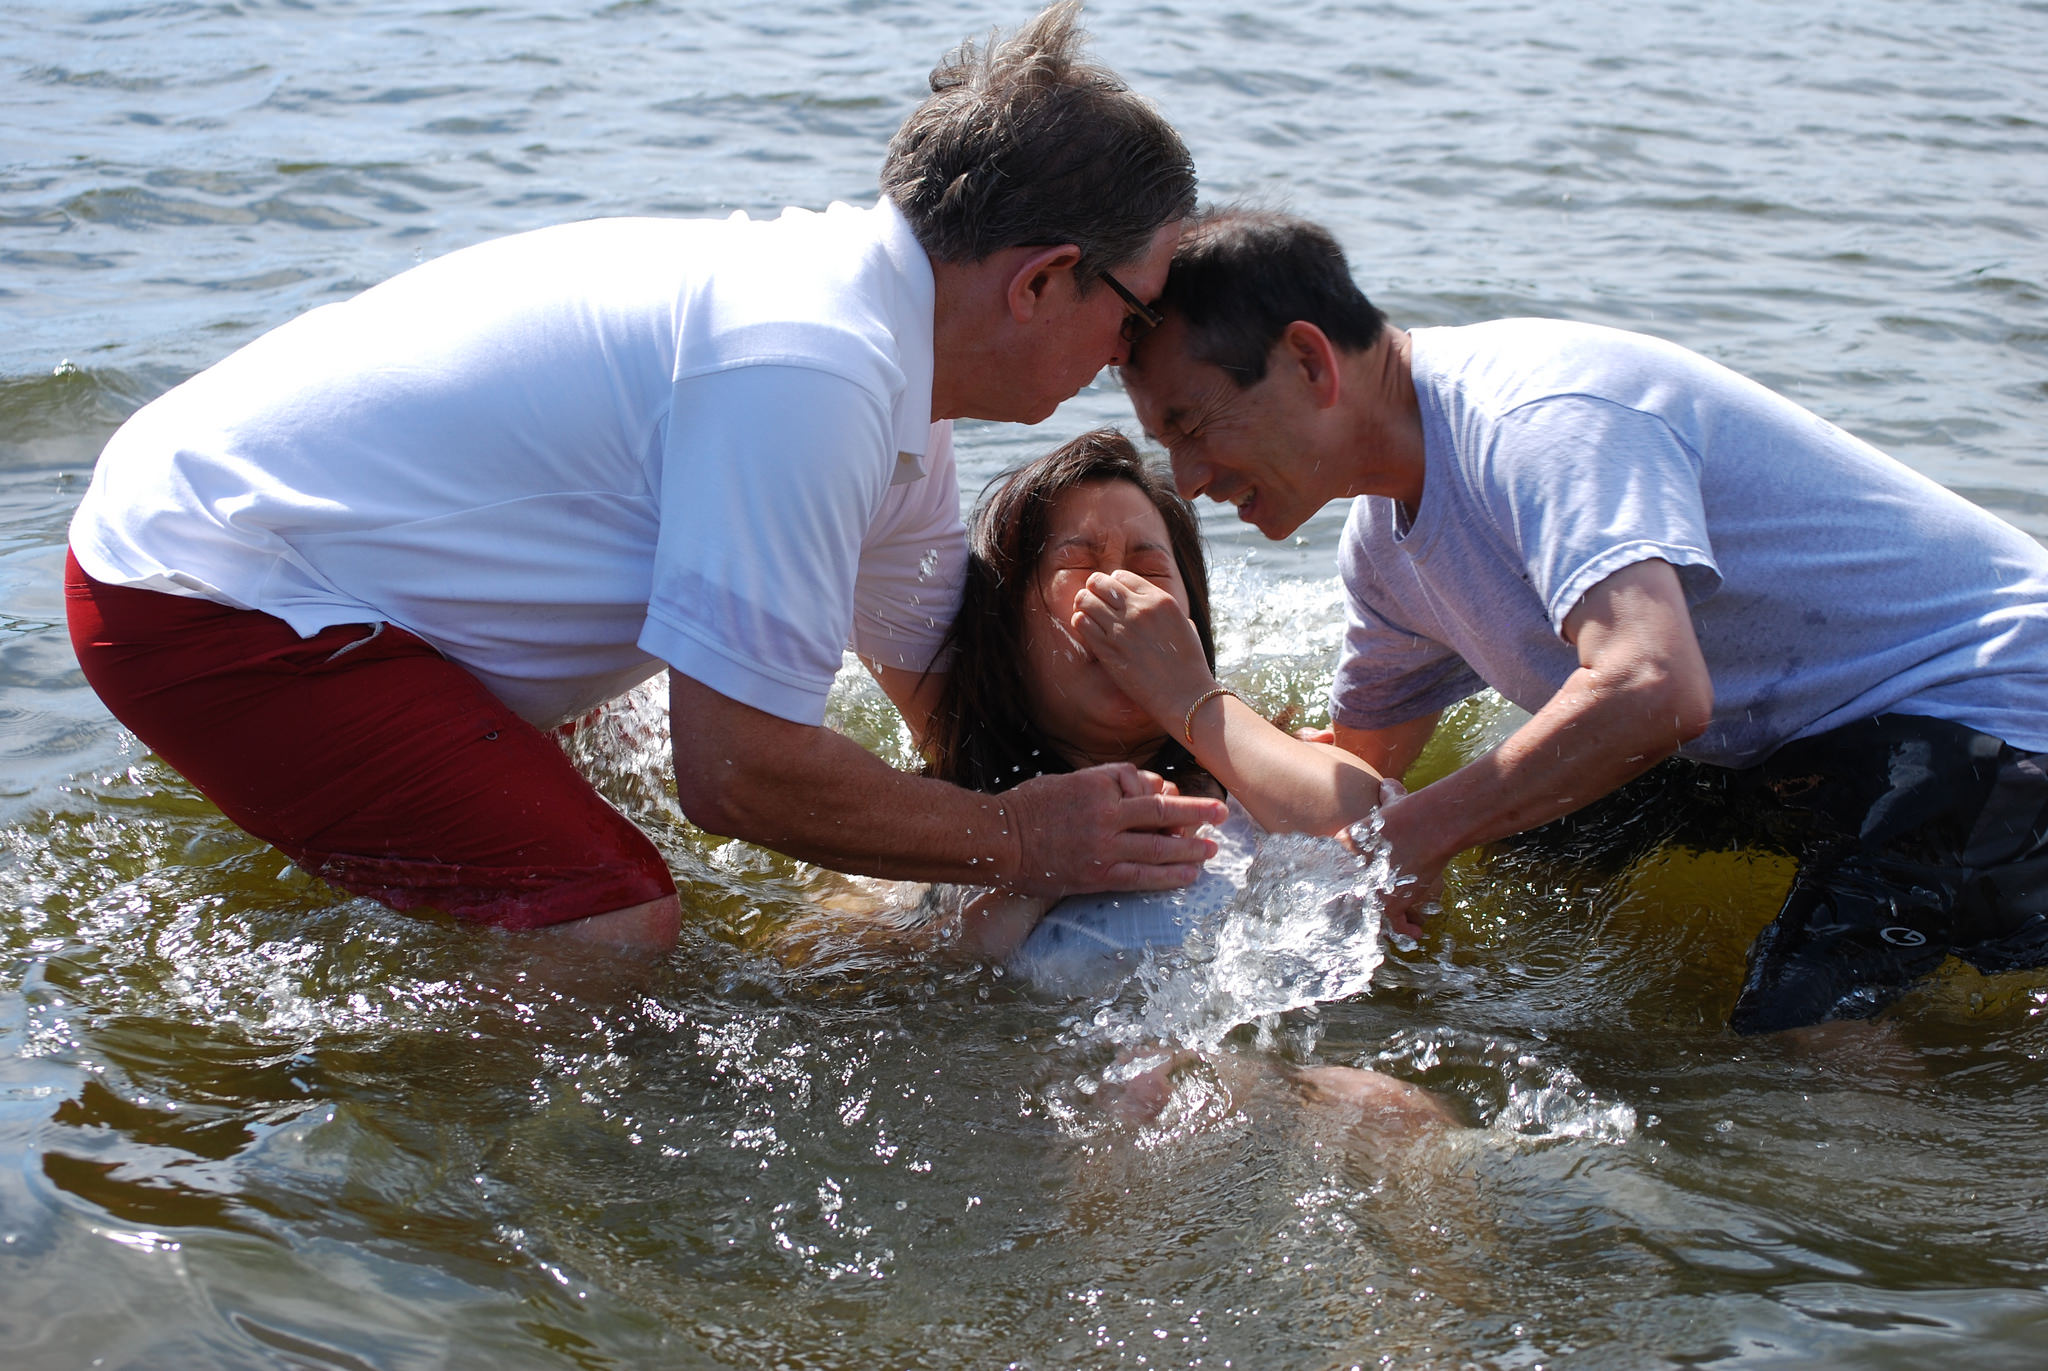 New Hmong ministry baptizes 18 in single day